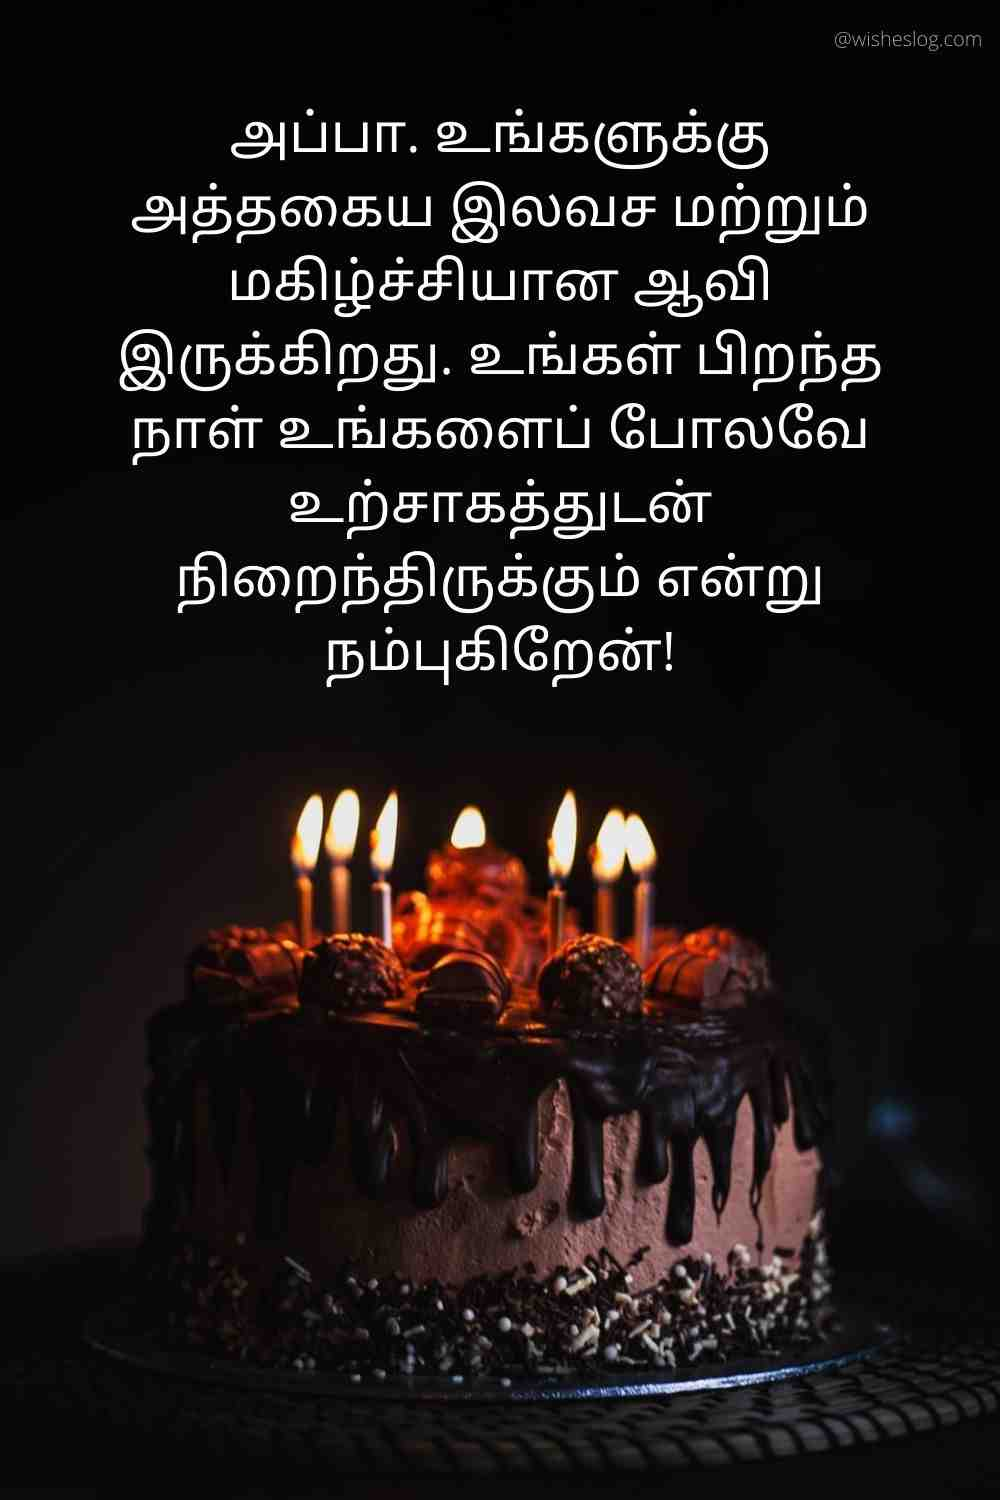 birthday wishes for daddy in tamil